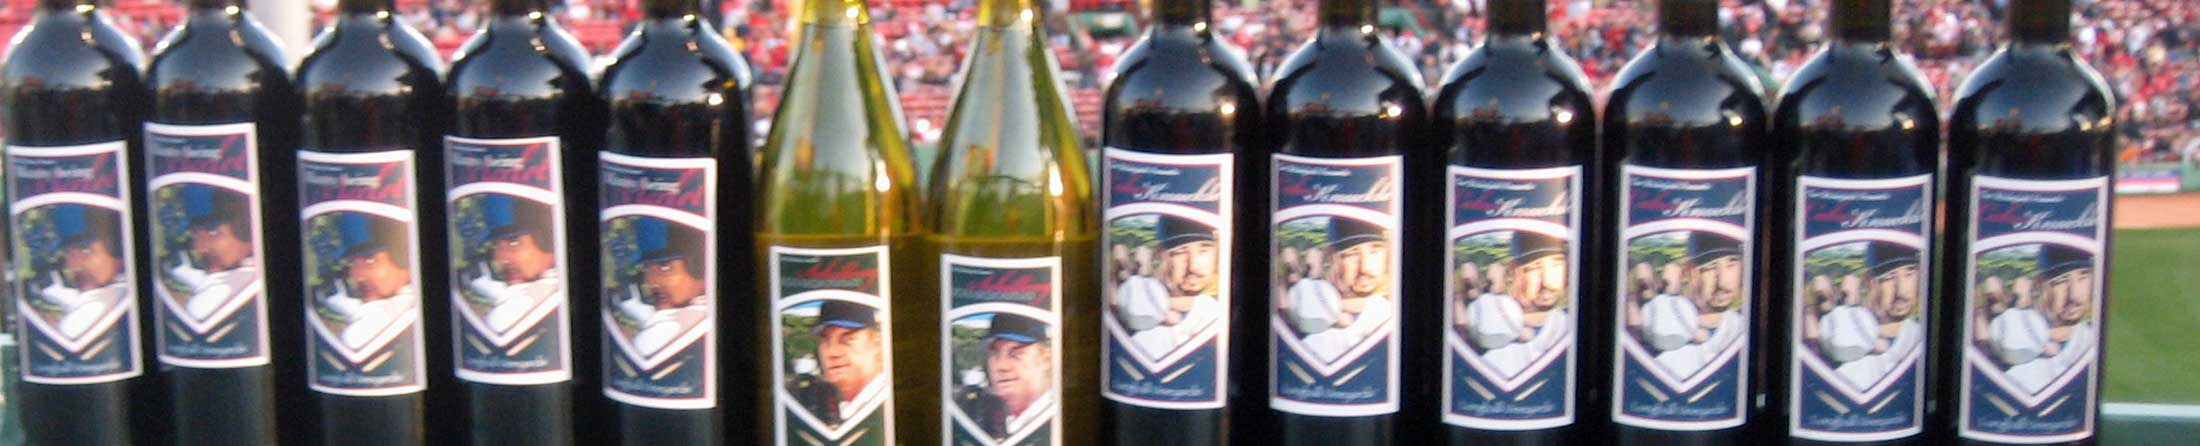 2007 Boston Red Sox Wine Bottles